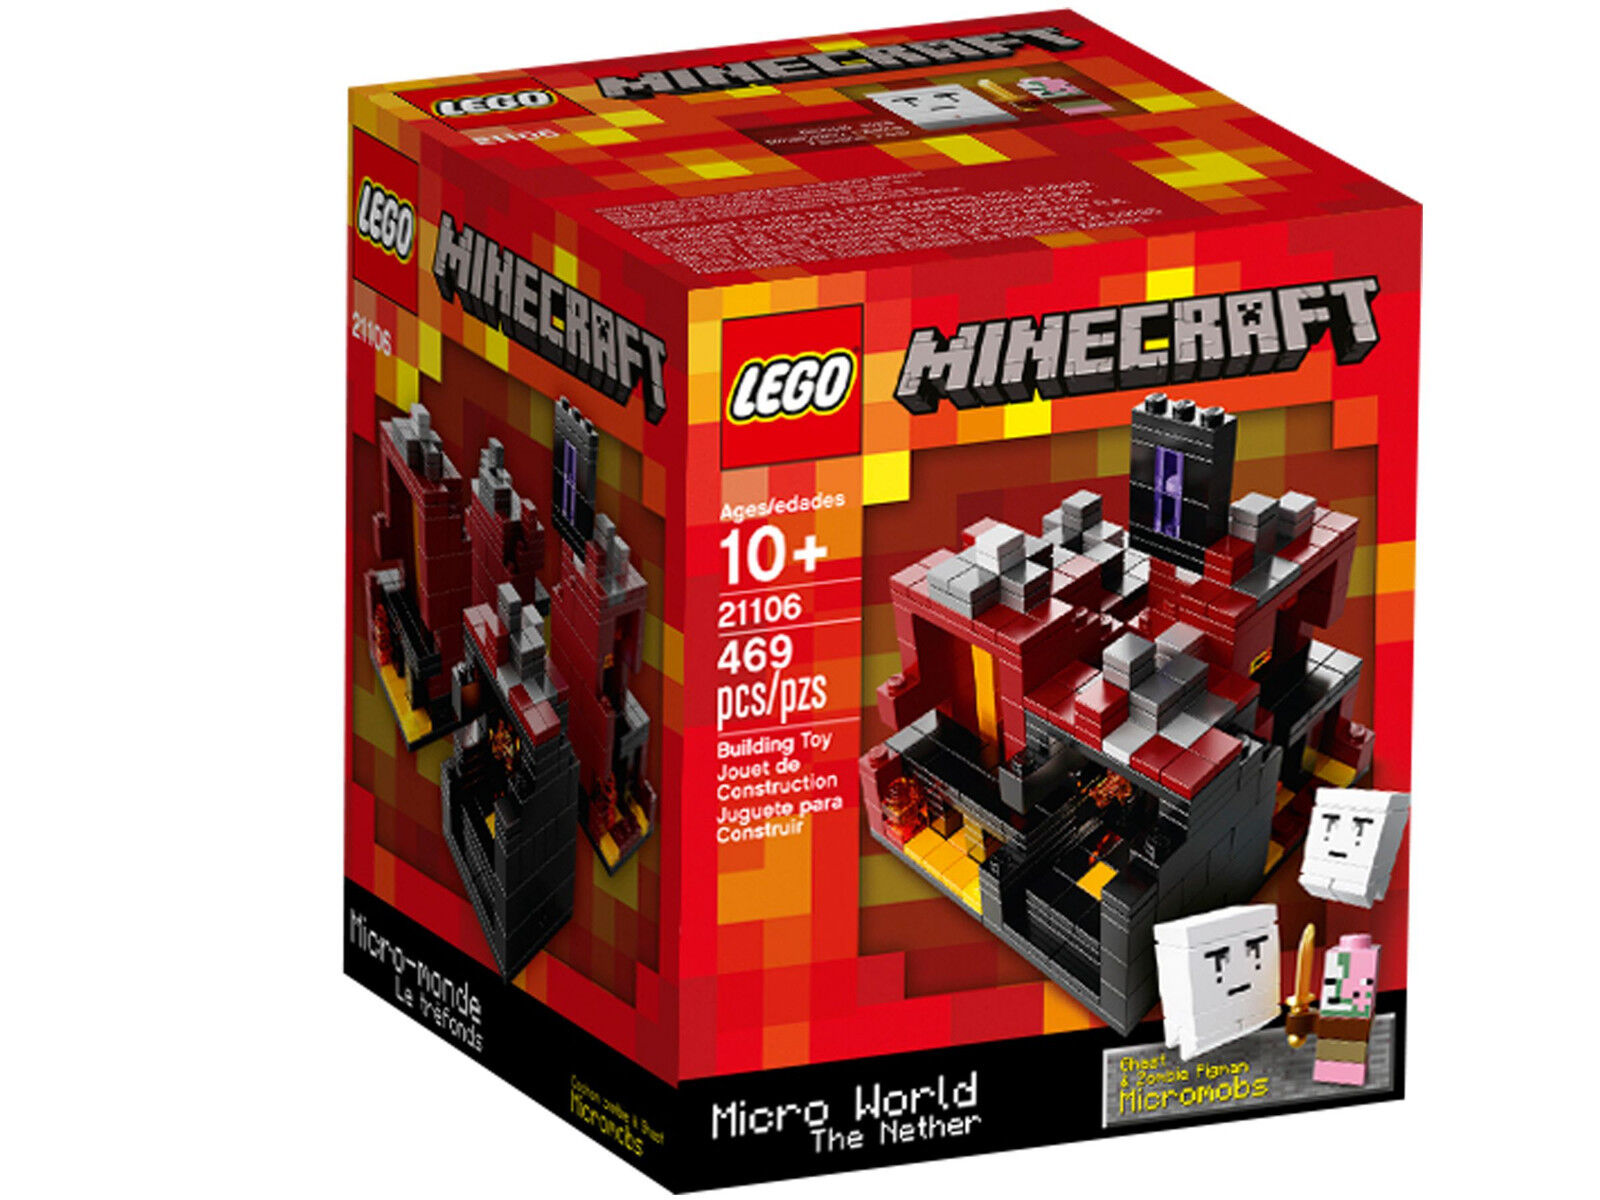 LEGO 21106 Minecraft Micro World - The Nether - Ideas Cuusoo Steve Creeper